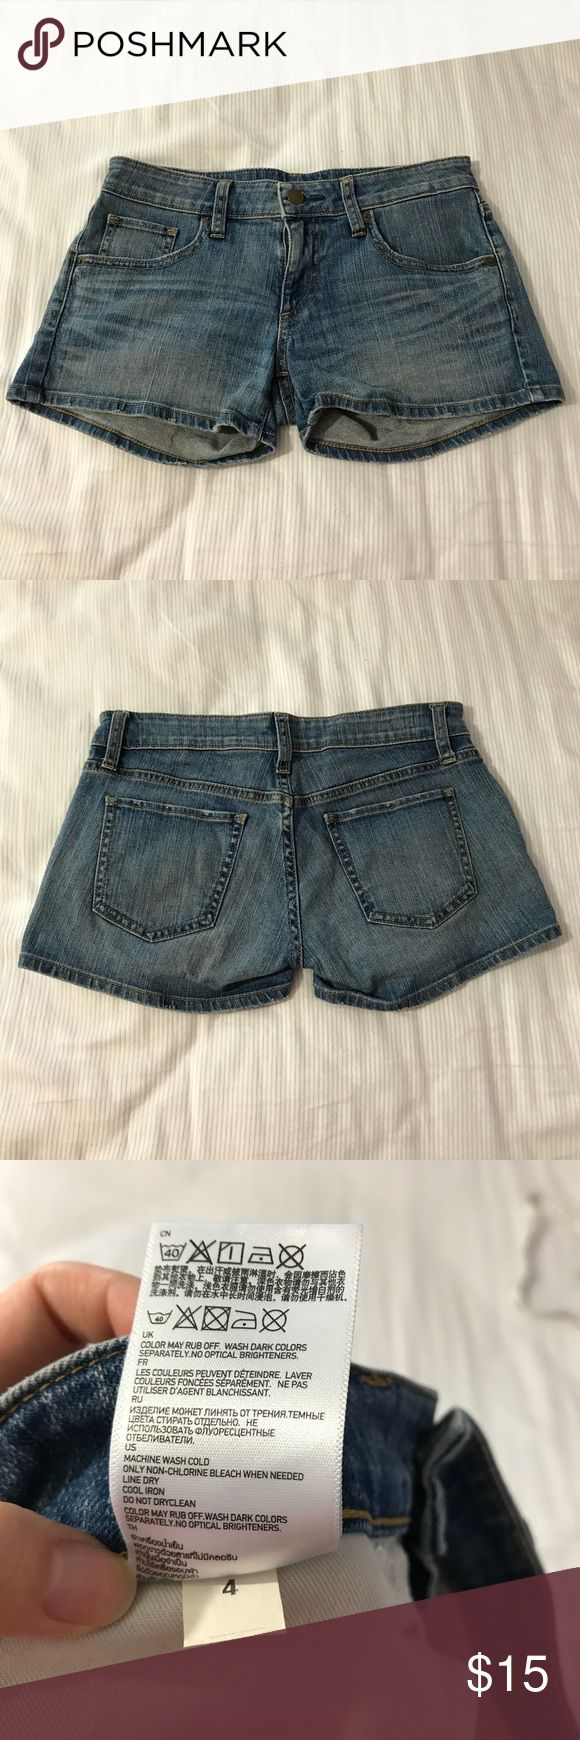 Uniqlo blue denim shorts size 4 in EUC These denim shorts are perfect for the summer! Measurements are shown in the pictures. They are in EUC with no holes, rips, or stains. Bundle with other items from my closet for the best deal! Uniqlo Shorts Jean Shorts